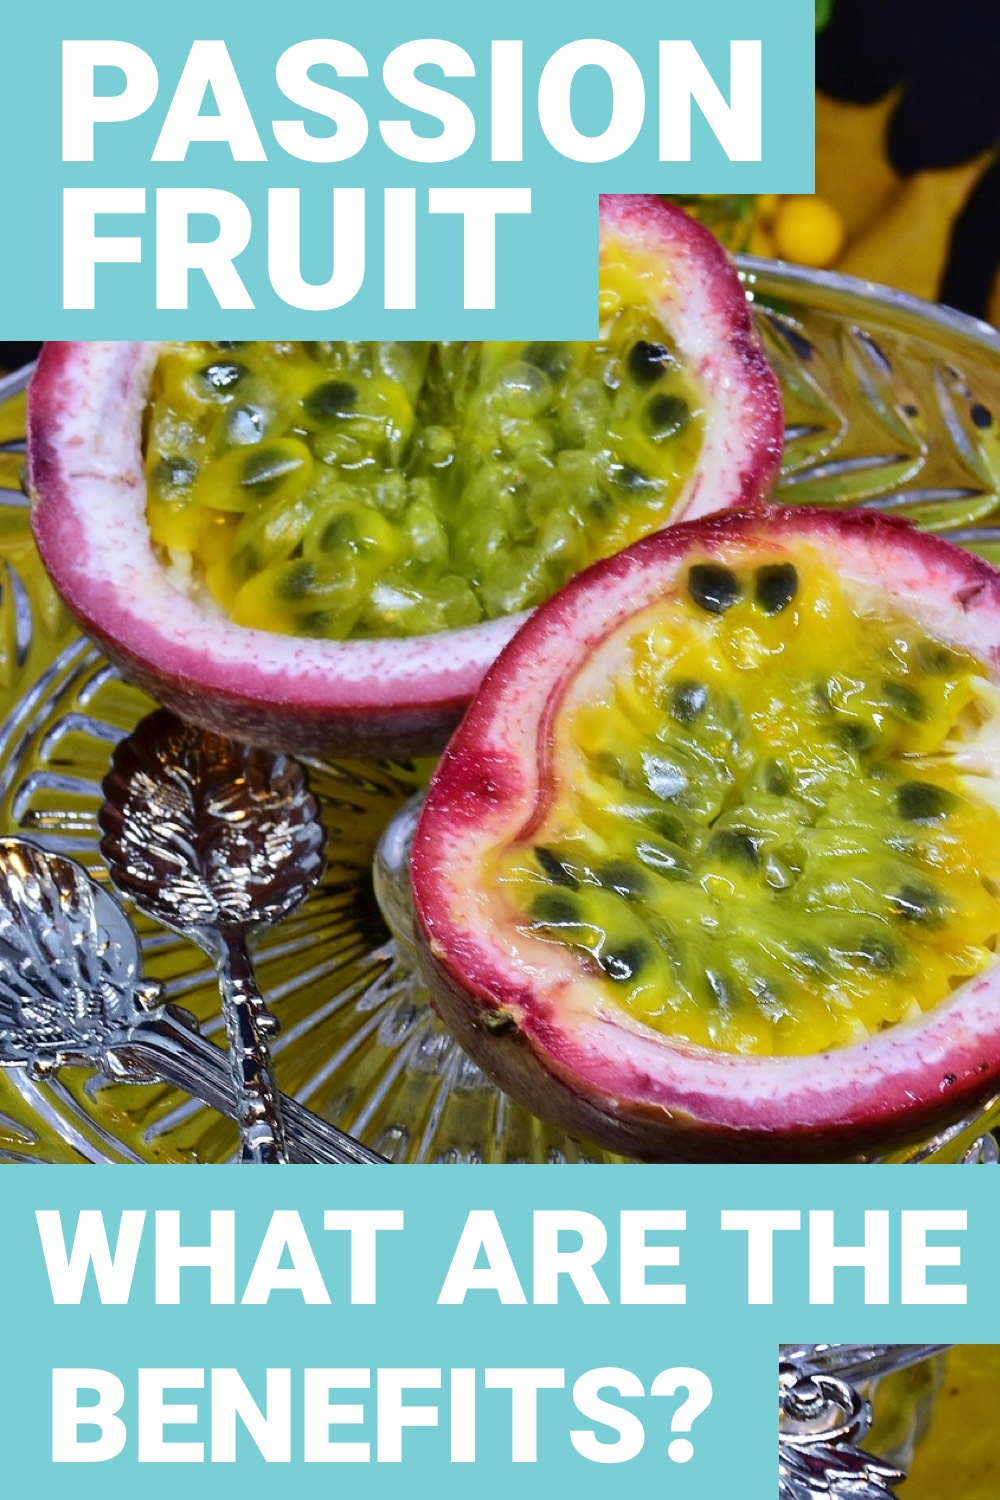 If you've never had passion fruit before, you should look into having it. Passion fruit benefits are something that you should never overlook.